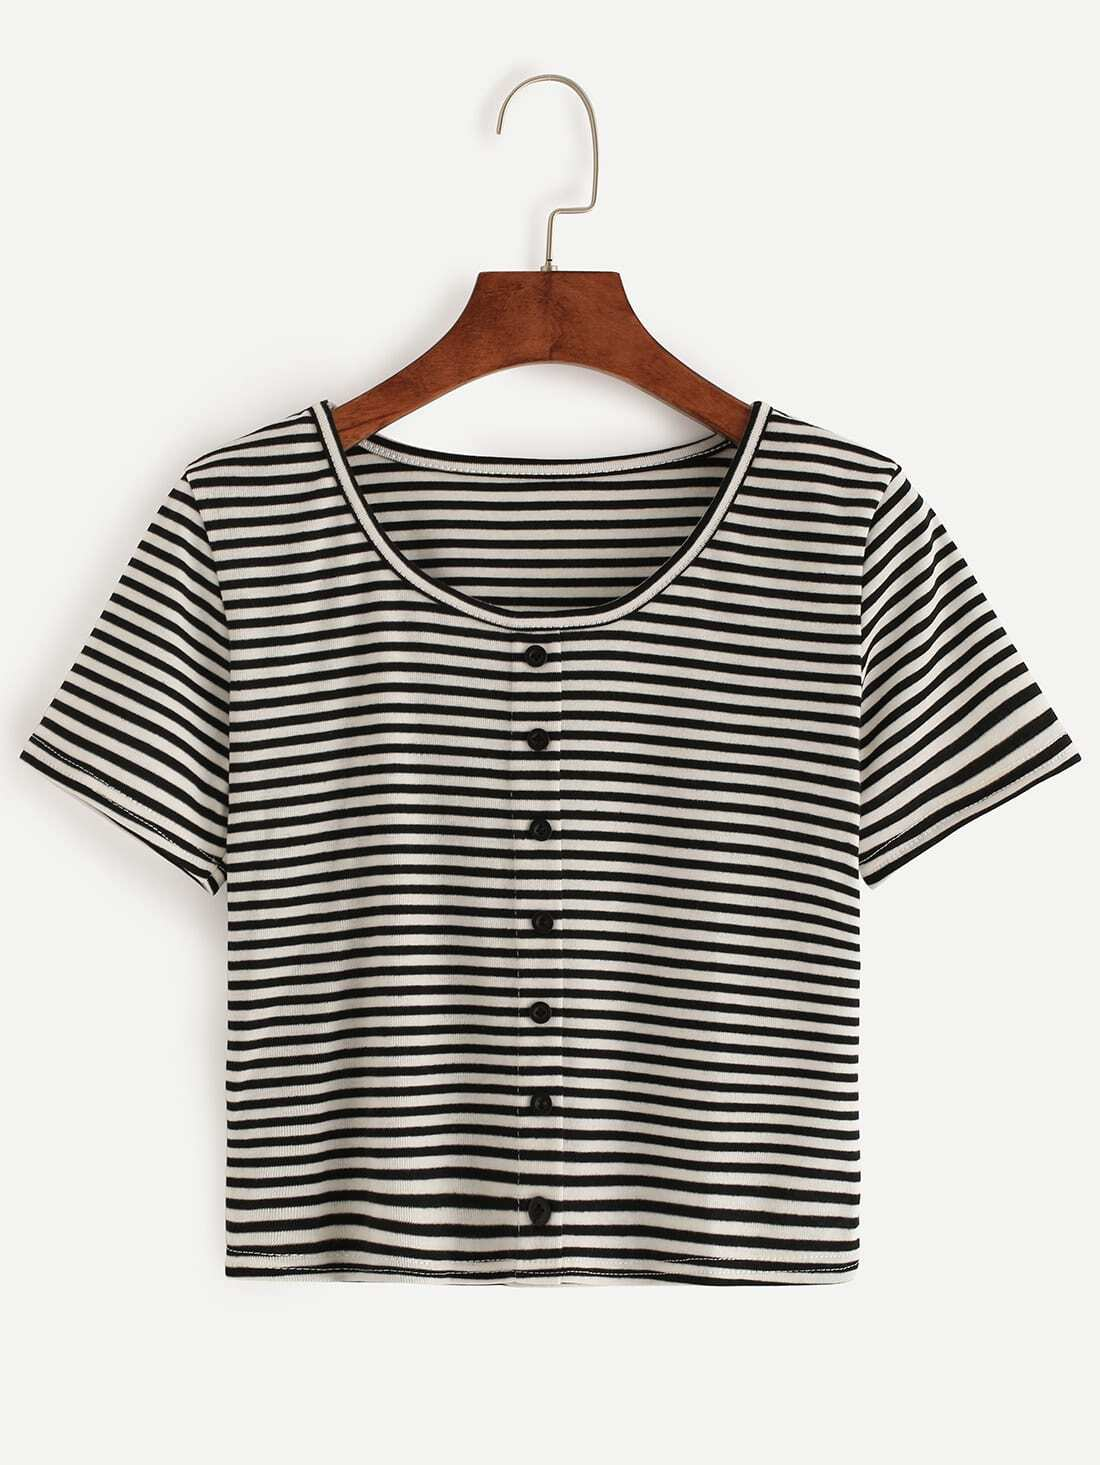 Black White Striped T Shirt With Buttons